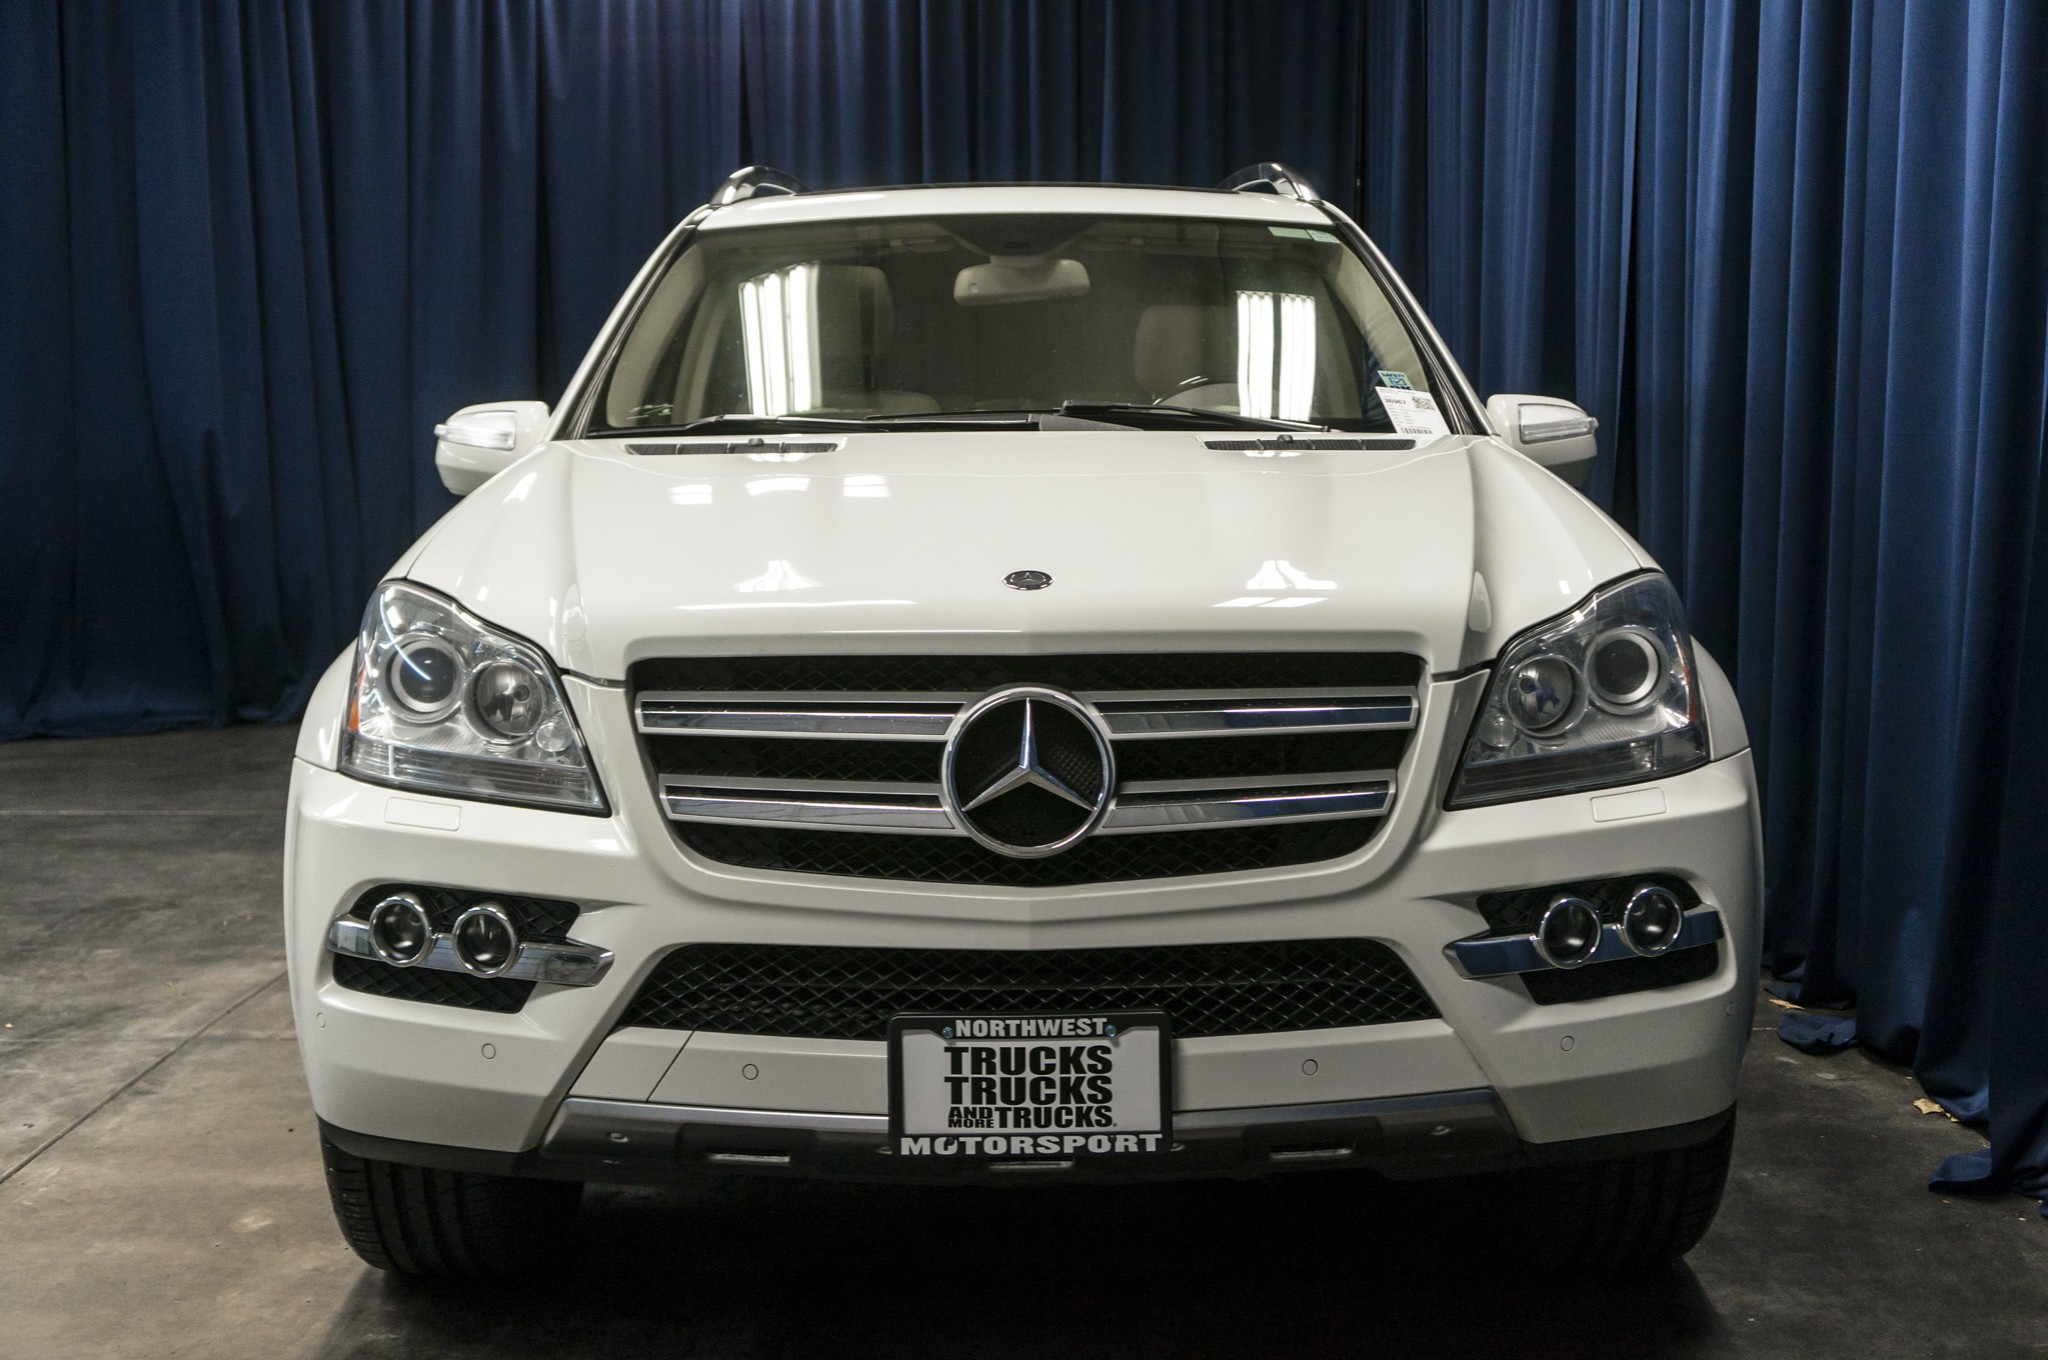 Used 2010 mercedes benz gl450 4matic awd suv for sale 36967 for Mercedes benz suv used for sale